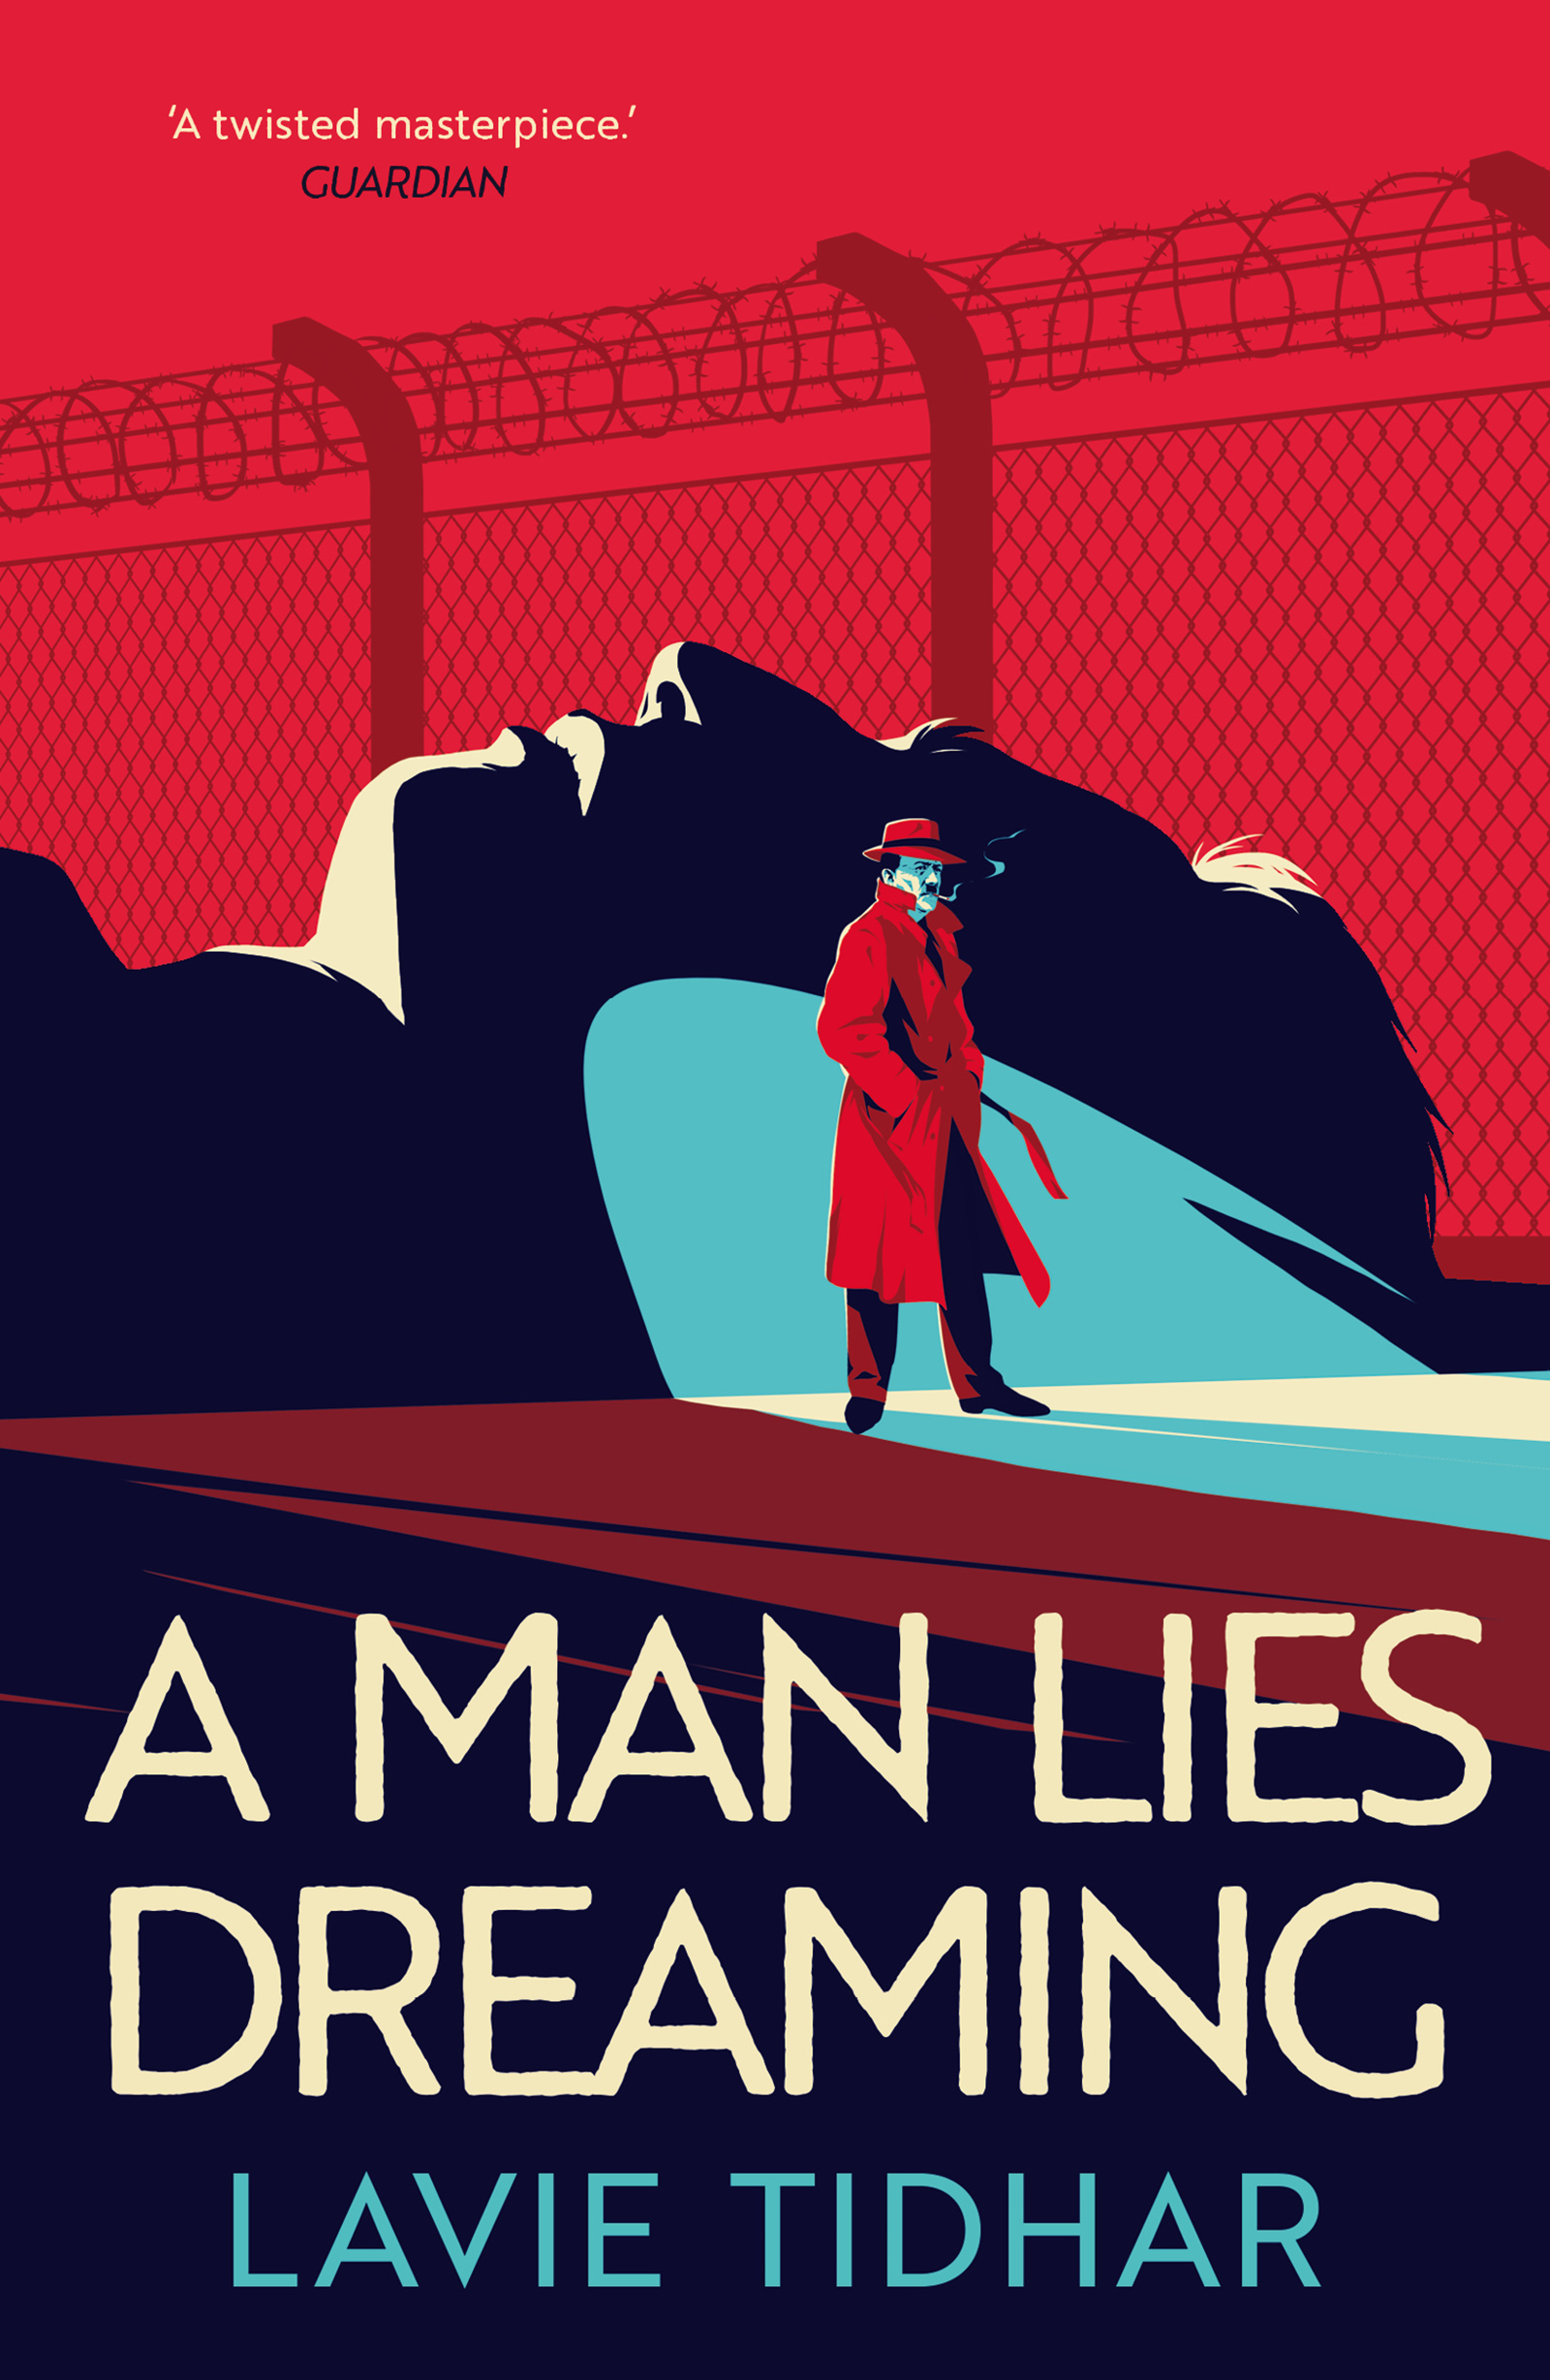 tidhar_a-man-lies-dreaming_pbo